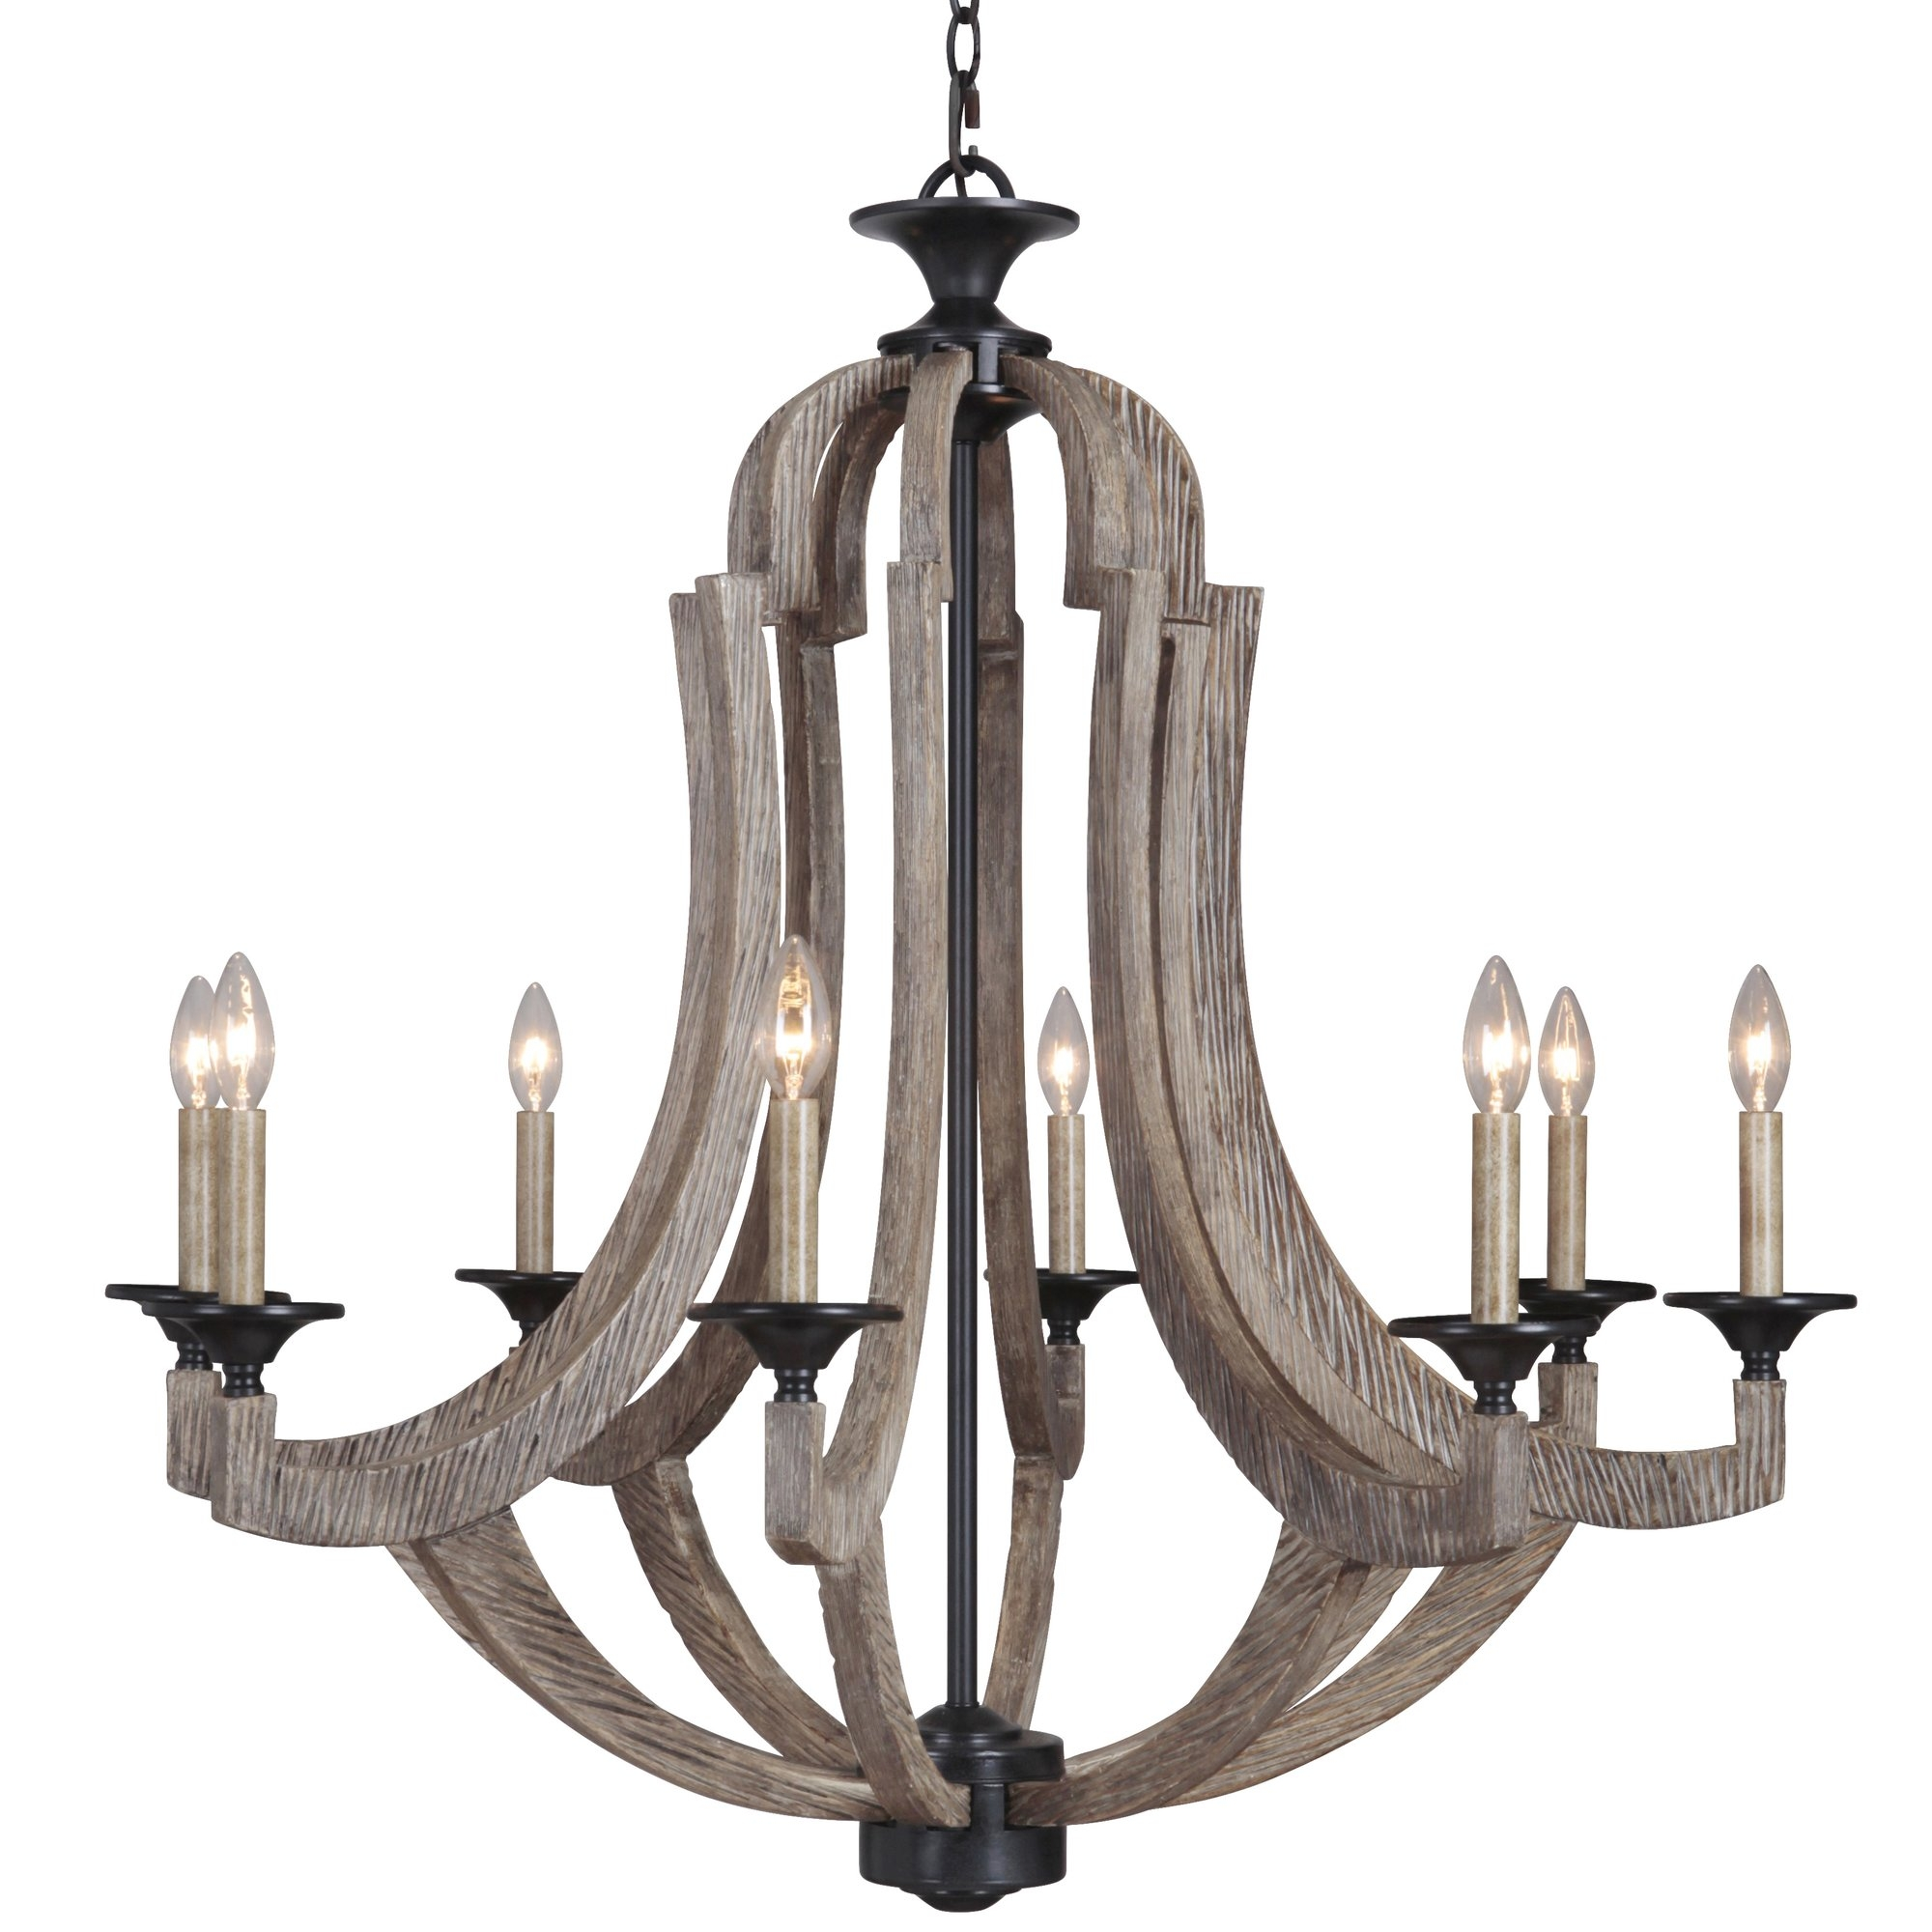 Candle Chandeliers Youll Love Wayfair Regarding Candle Light Chandelier (View 10 of 15)